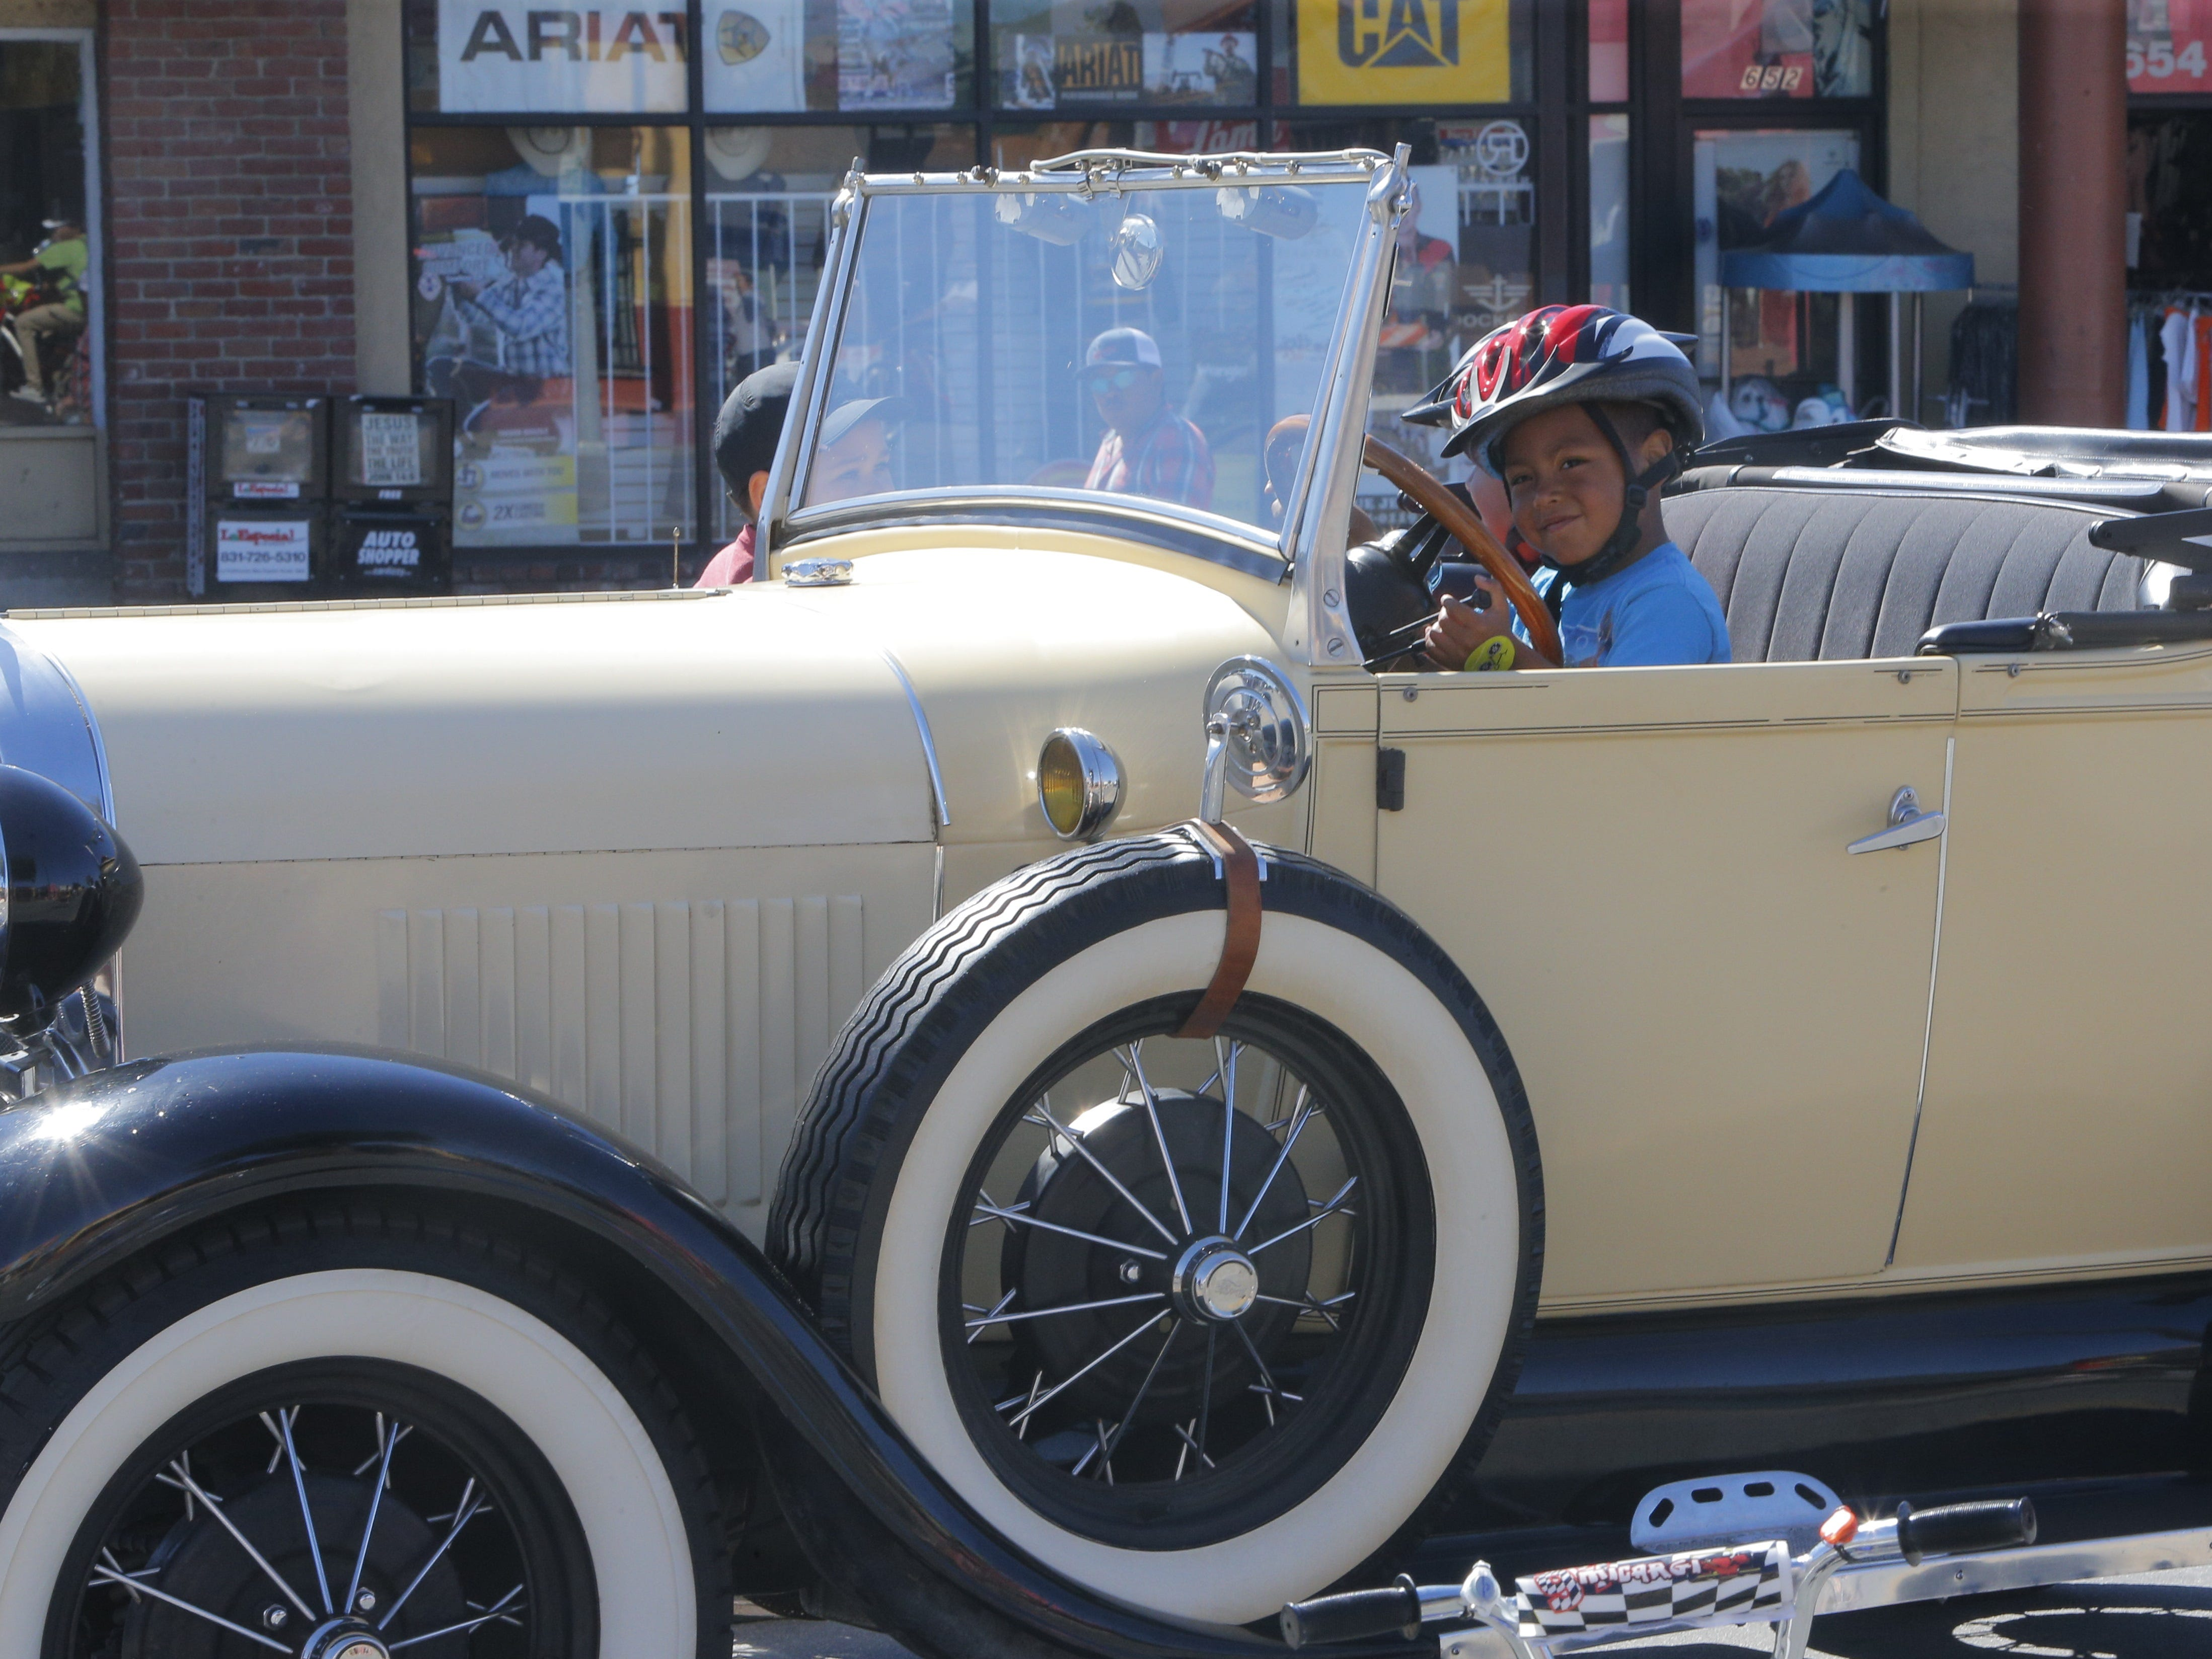 Dayron Flores, 5, models for a photo his mom is taking inside a classic car at the Ciclovia Salinas on Sunday.